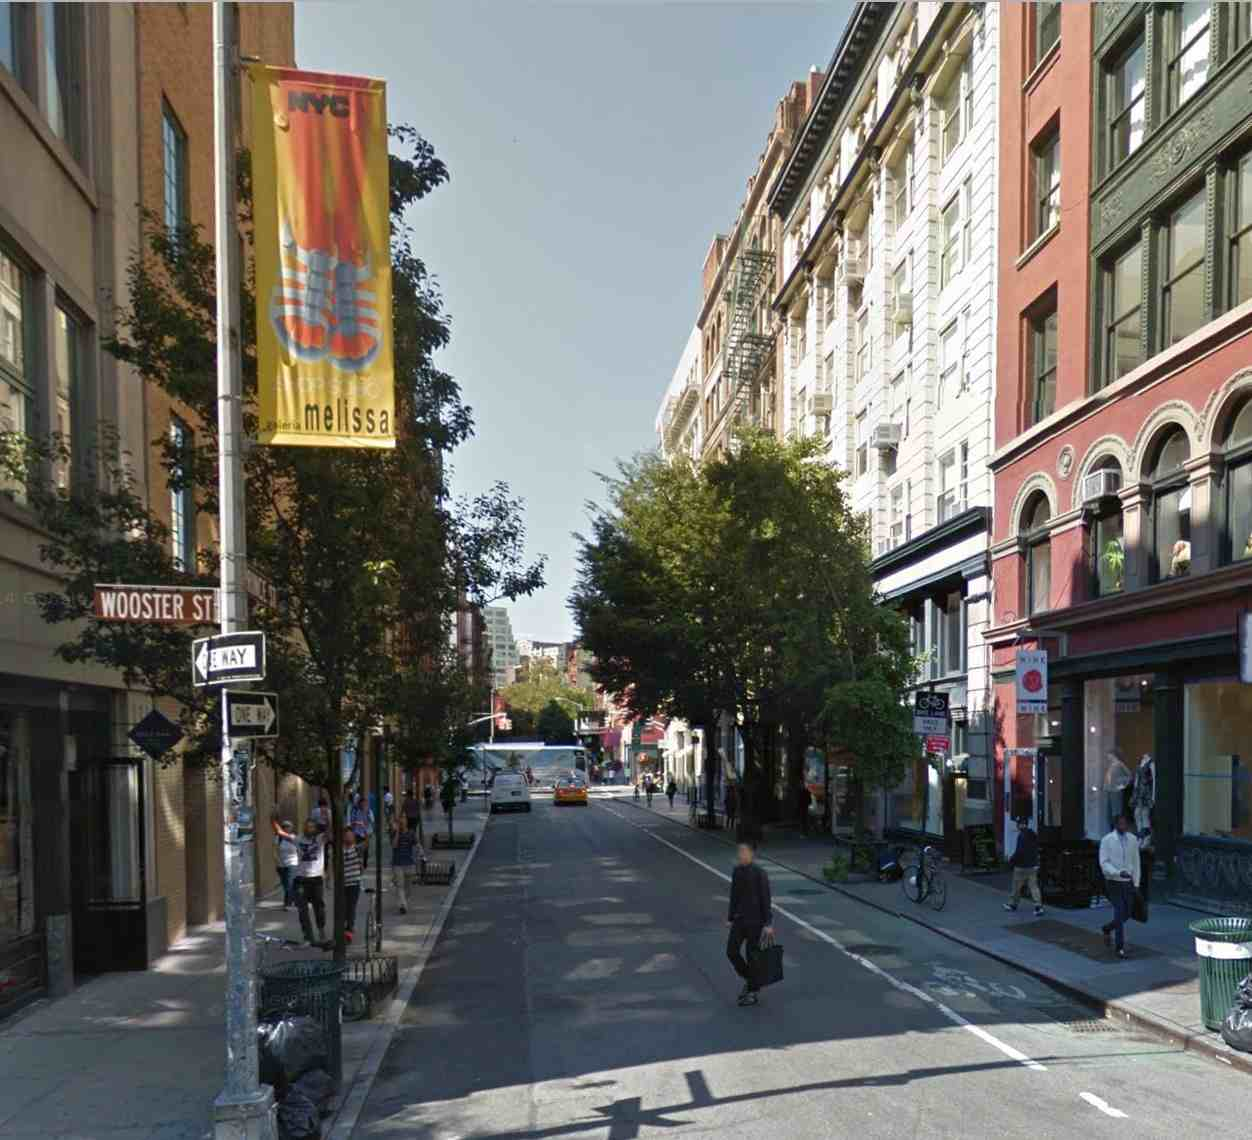 Prince Street at the corner of Wooster Street in SoHo, as it appears today.  Image from Google Maps.